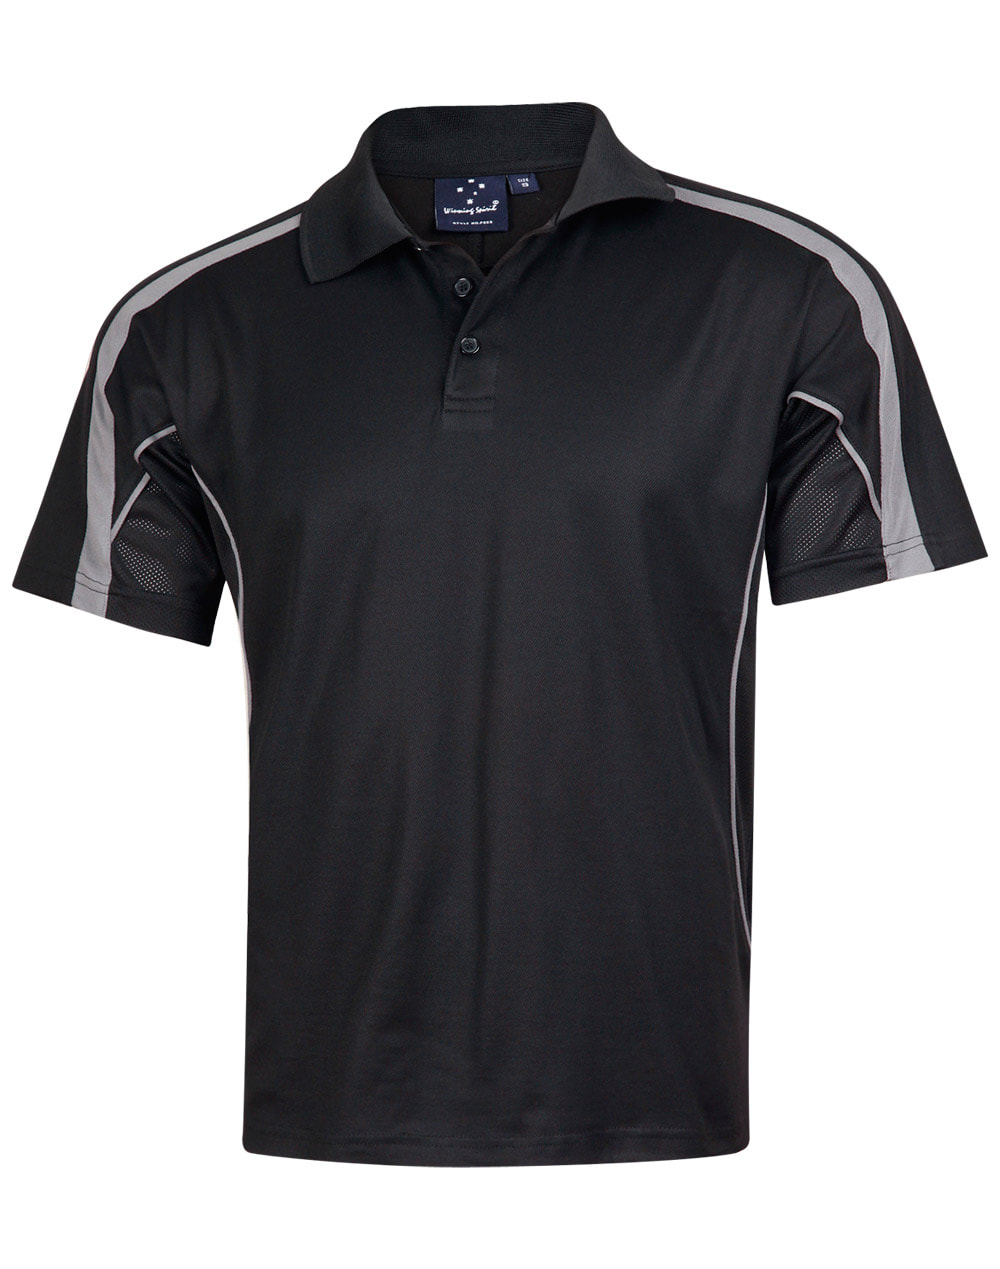 Yarra Polo Black/Gold